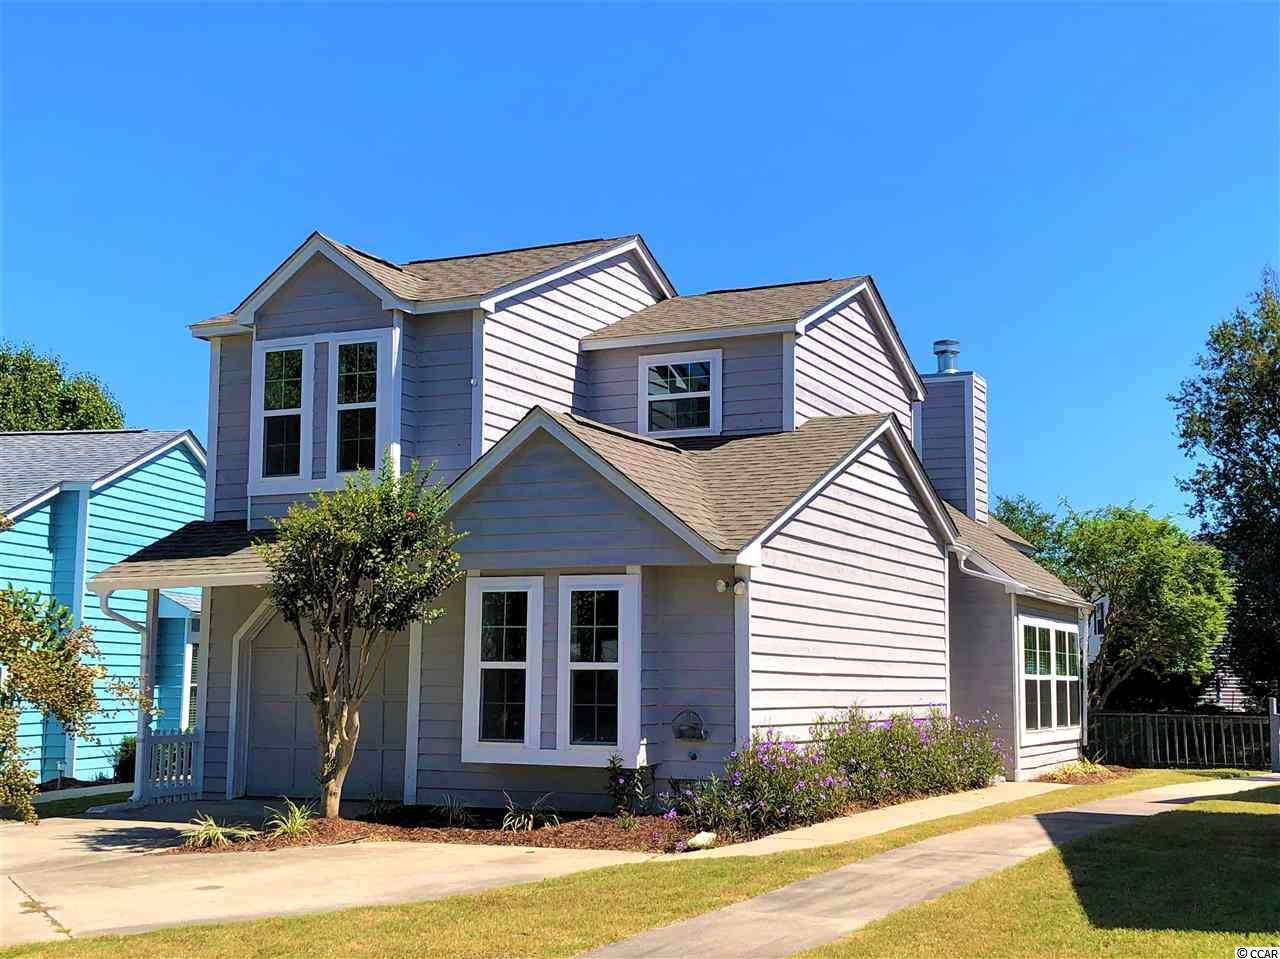 "CUTE AS A ""BUTTON"" is this 3 Bedroom, 2 Bath, 1 1/2 story home in the very desirable area of ""Lake Homes @ Belle Park"".  Master Bedroom is on the main level. In the heart of North Myrtle Beach just minutes to the beach, the Inter-coastal Waterway, Grand Strand ER, Restaurants, Post Office, and Shopping.  This home has been remodeled and is ""like new"".  Enter the large Great Room with Vaulted Ceilings, New Fireplace, and a display of light from the  bounteous row of windows overlooking the pond and pond bridge to the Pool.  Enjoy the pond fountain from the Den, also circled with windows. This Charmer boasts in 2019:  NEW ROOF, NEW WINDOWS, NEW WATER HEATER, NEW REFRIGERATOR, NEW CHIMNEY, NEW FIREPLACE, NEW KITCHEN CABINETS, NEW GRANITE COUNTER-TOPS, NEW KITCHEN SINK, NEW MICROWAVE/RANGE HOOD, NEW CEILING FANS, New Mantel and Trim, New Paint (interior).  New Bathroom: Vanities, Sinks, Toilets, Faucets, Mirrors.  New Kitchen Faucet, New Bathroom Tile upstairs,  New Light Fixtures throughout (inside and outside), New Door Hardware and Locks throughout, New Outlets and Cover Plates throughout, New A/C Registers, New Garage Door Sensors, and updated Landscaping.  In 2018 New Carpet.   In 2016: NEW HVAC, NEW DISHWASHER.   HOA includes: Lawn service, Pool.  DO NOT WAIT ON THIS ONE!"